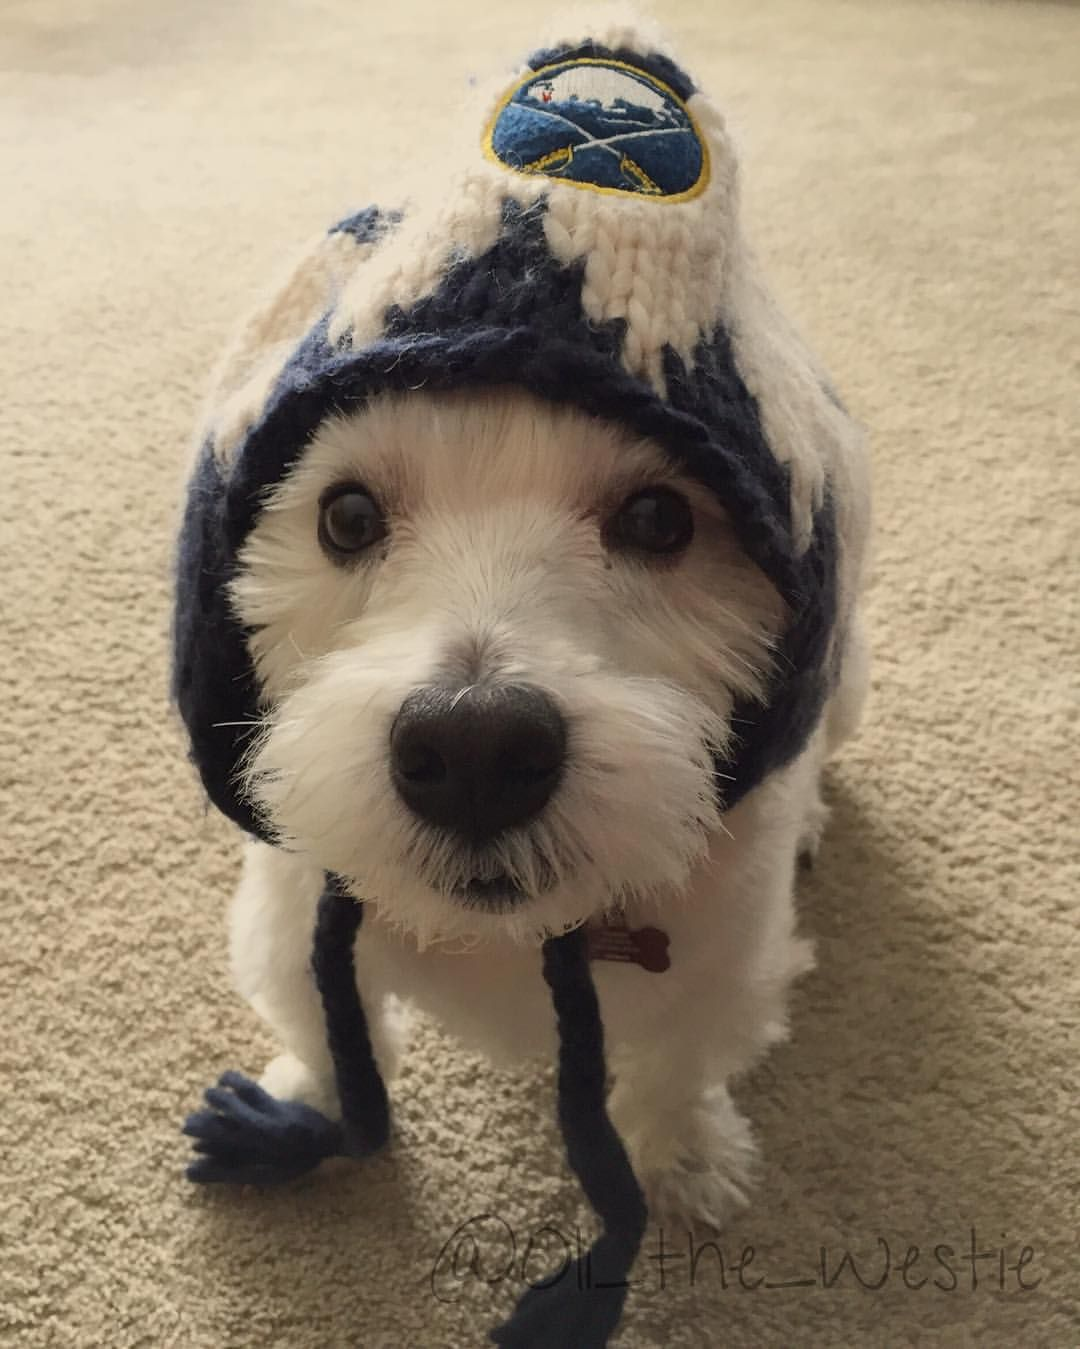 Getting ready to go play in the snow!